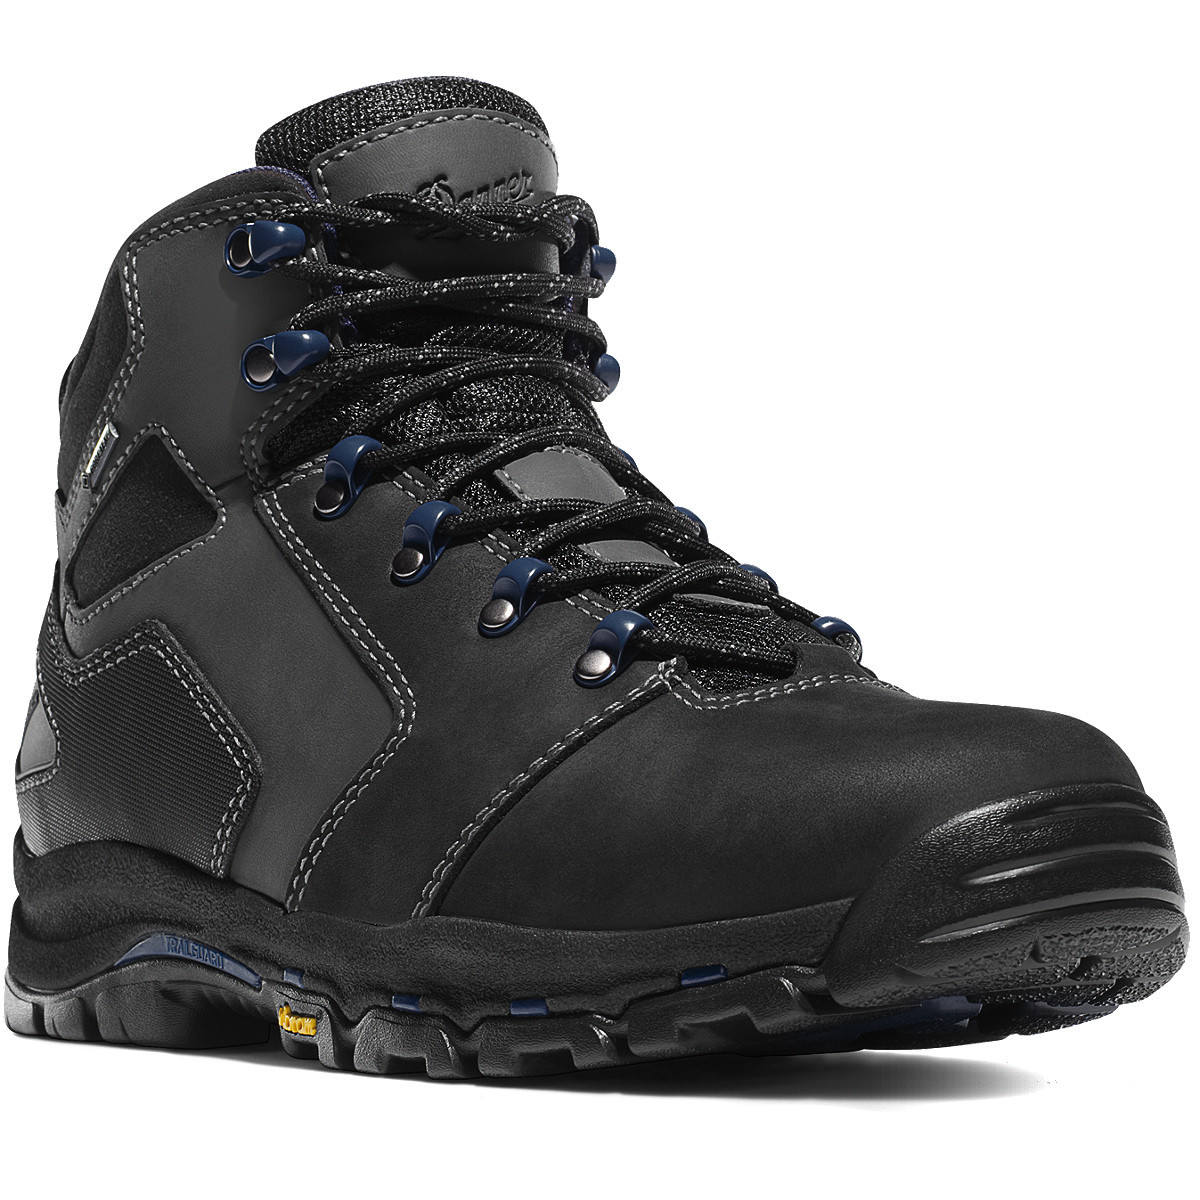 234b0d6e742 Danner Men's Vicious Composite Toe Gore-Tex 4.5'' Work Boot - Black